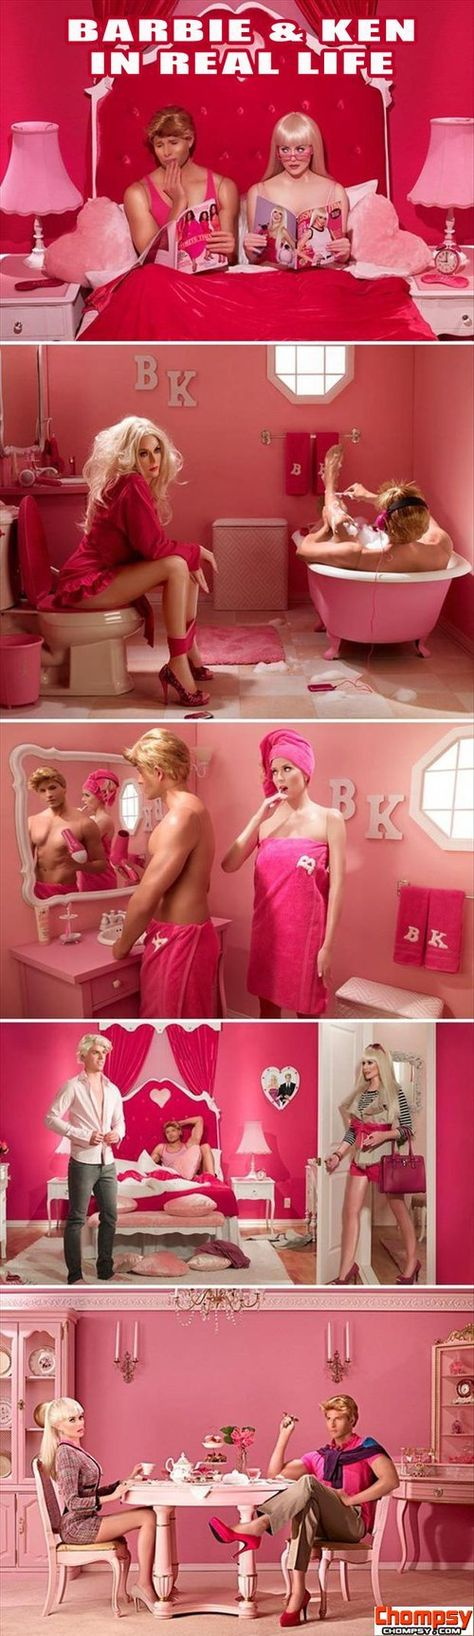 barbie and ken in real life funny pictures...lmao